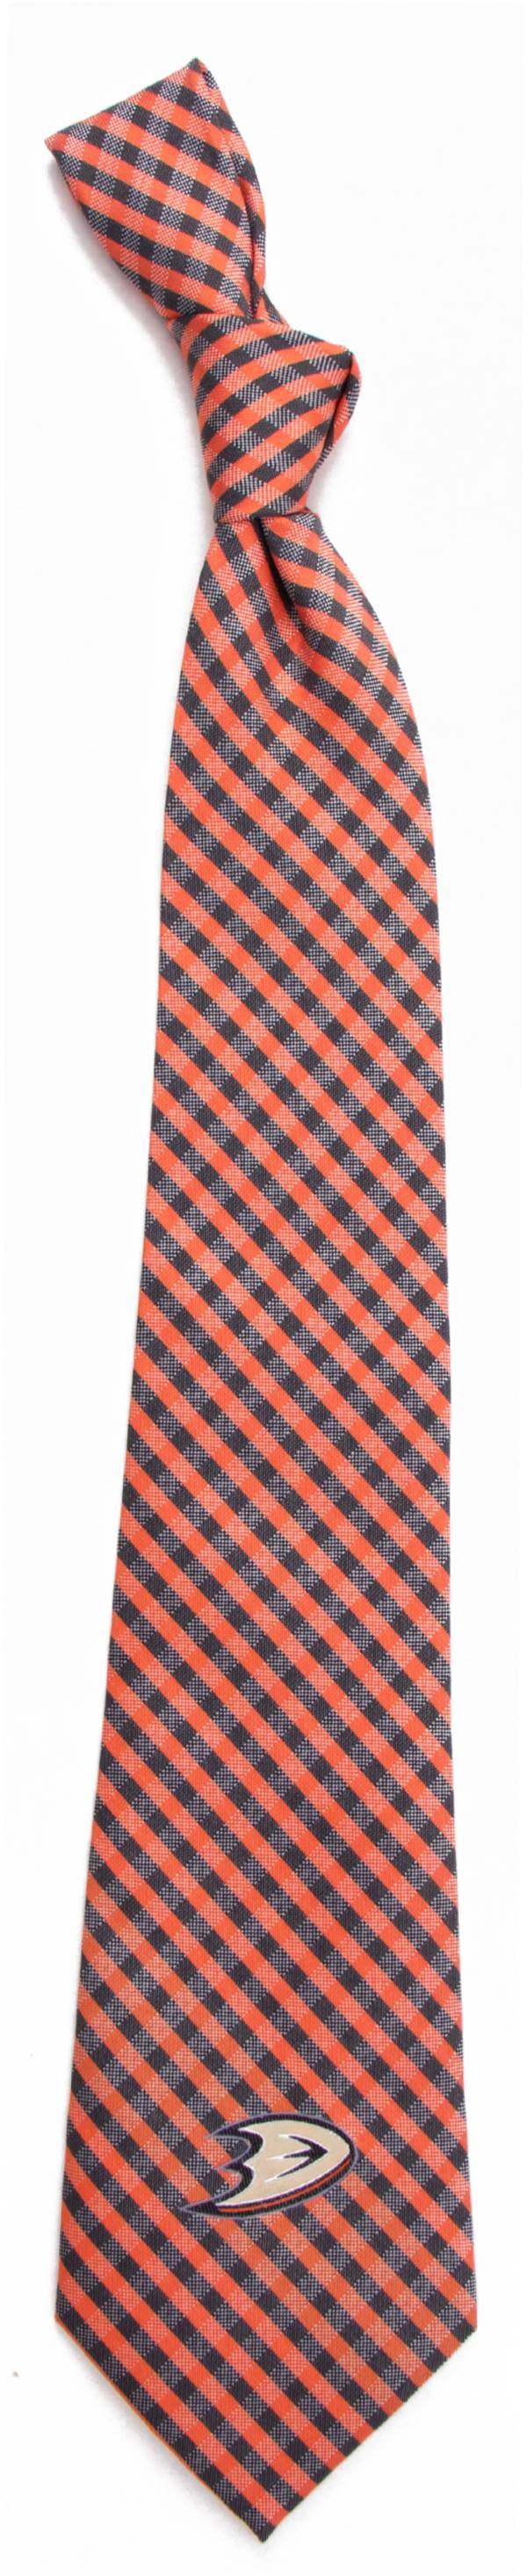 Eagles Wings Anaheim Ducks Gingham Necktie product image